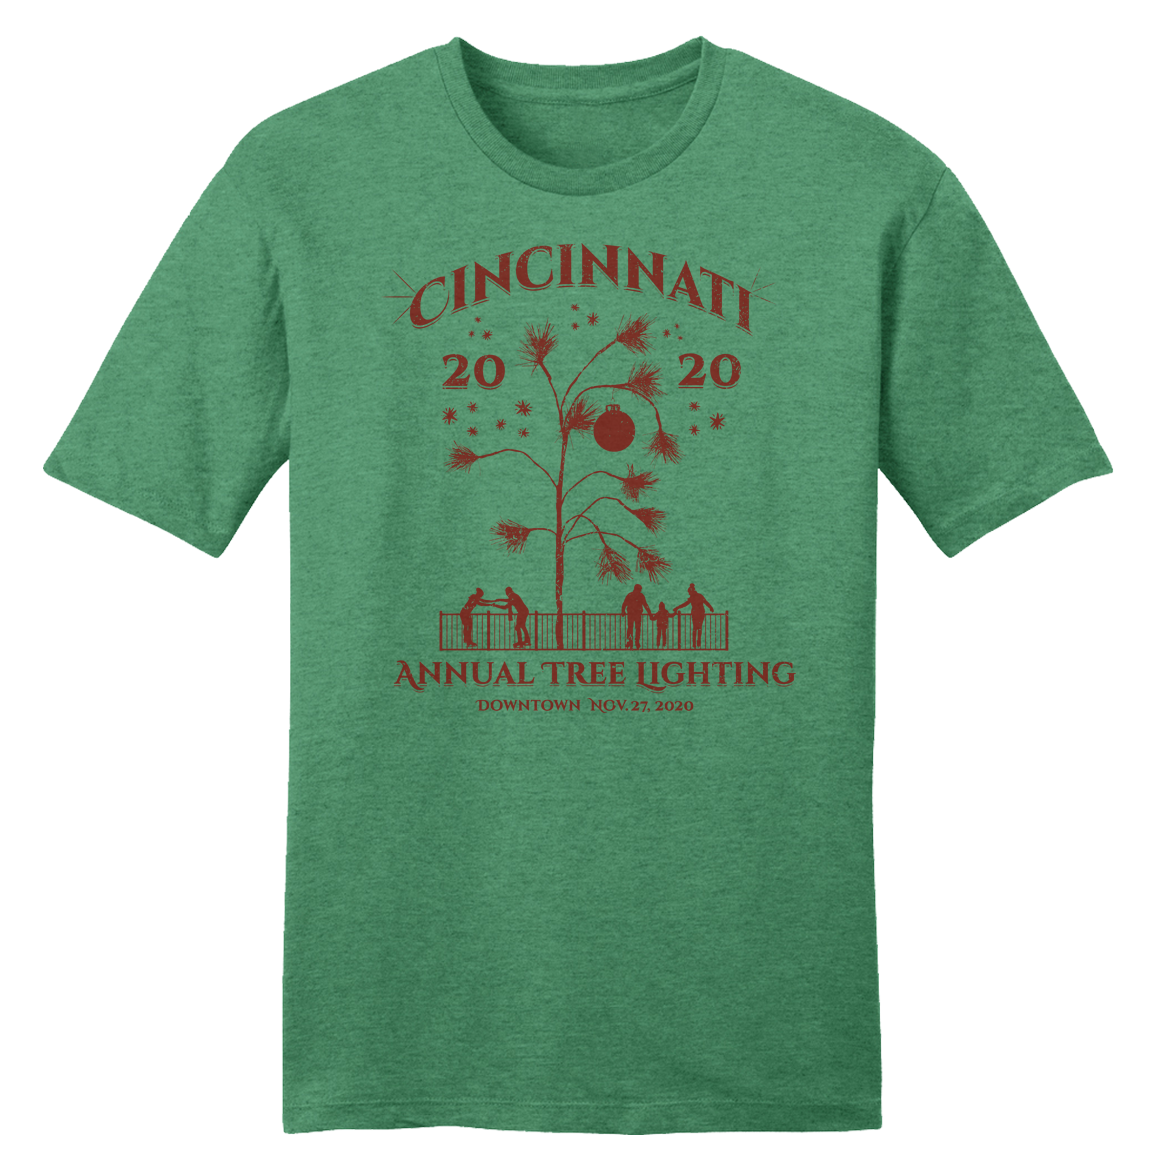 2020 Cincinnati Annual Tree Lighting - Cincy Shirts